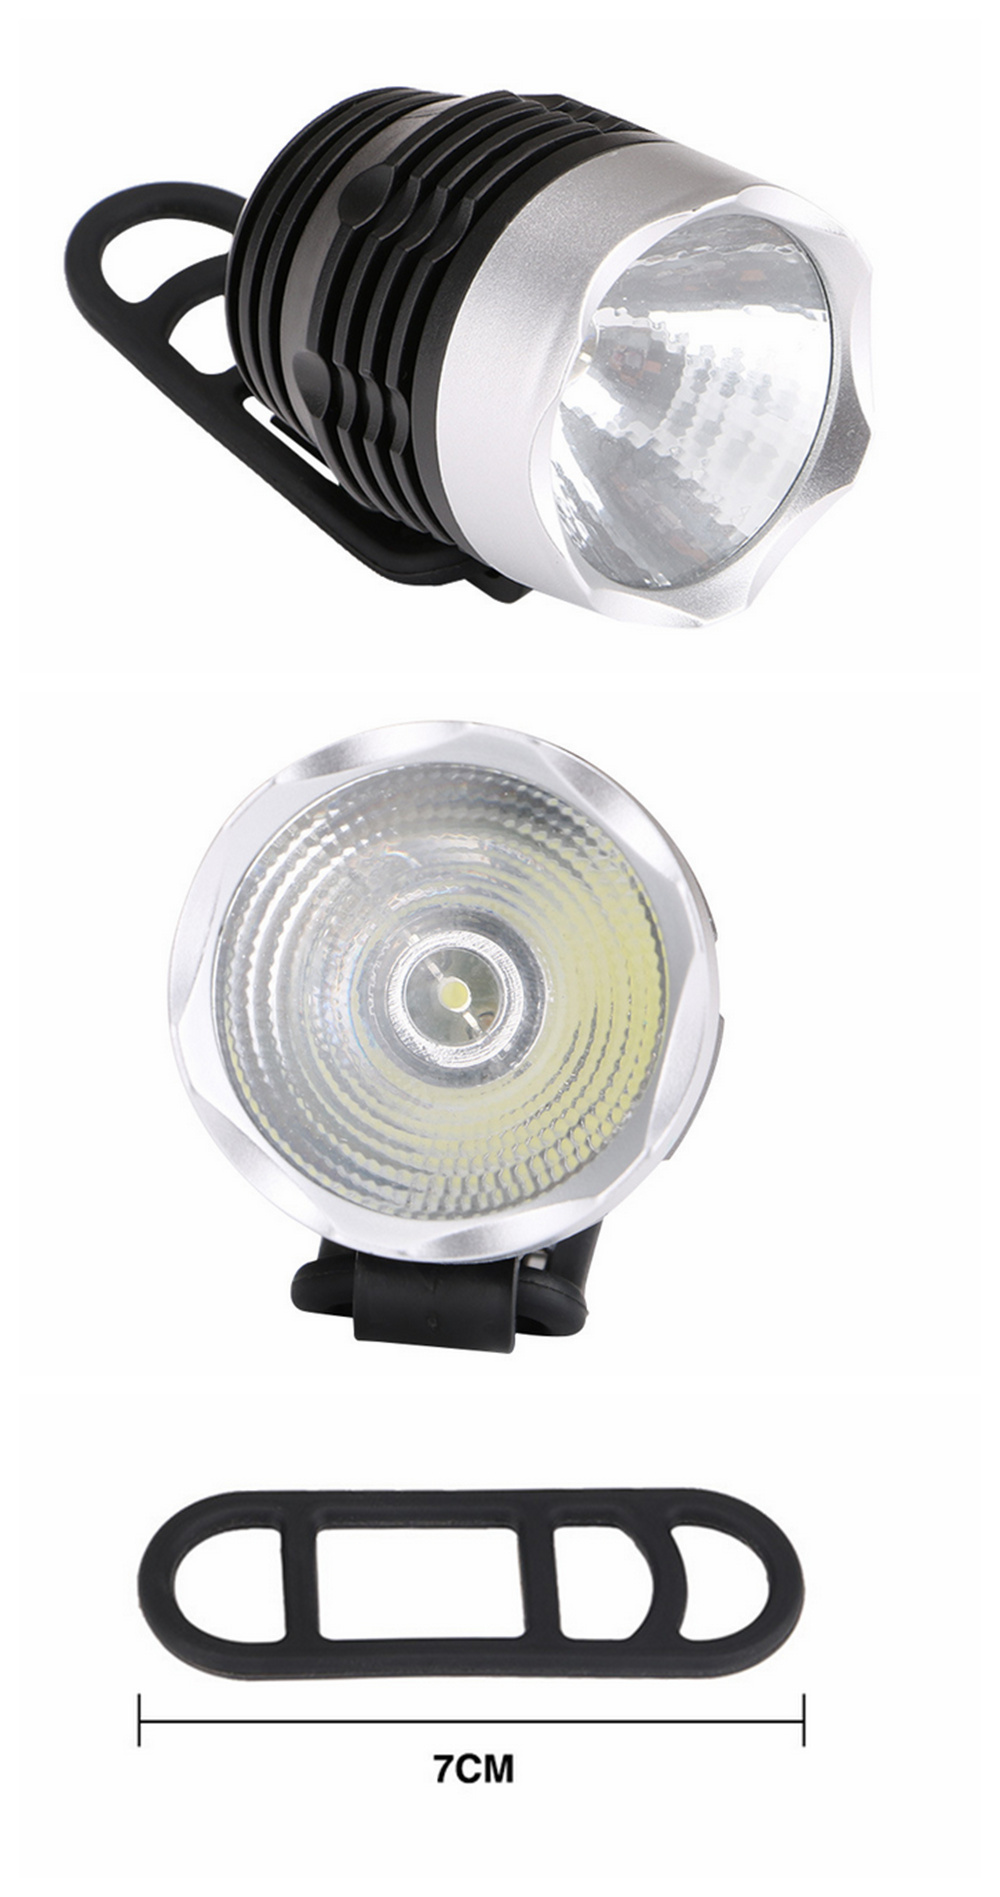 ZHISHUNJIA ZSJ-02 100LM 3-Mode Long-range Bicycle Headlights- Black